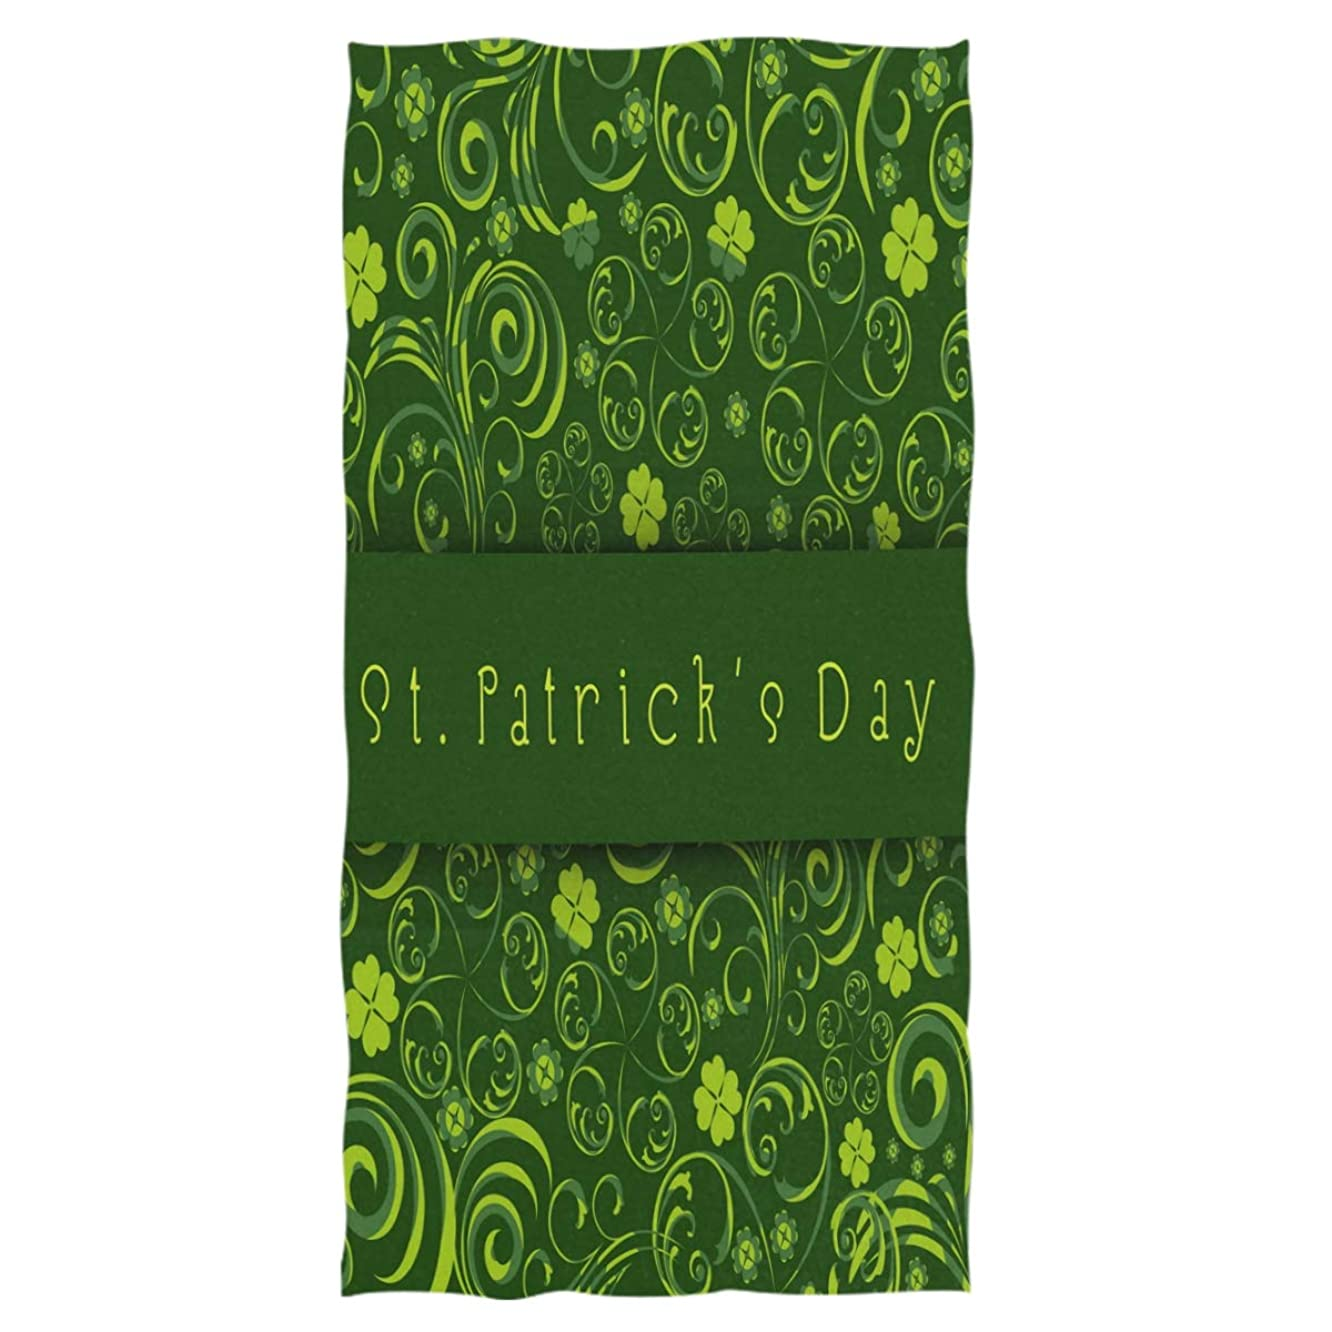 St. Patrick's Day Extra Large Hand Towels Green Floral Shamrock Clovers Irish Bath Towel Ultra Soft Highly Absorbent Multipurpose Bathroom Towel for Hand,Face,Gym and Spa Hoilday Decor,16x30 IN